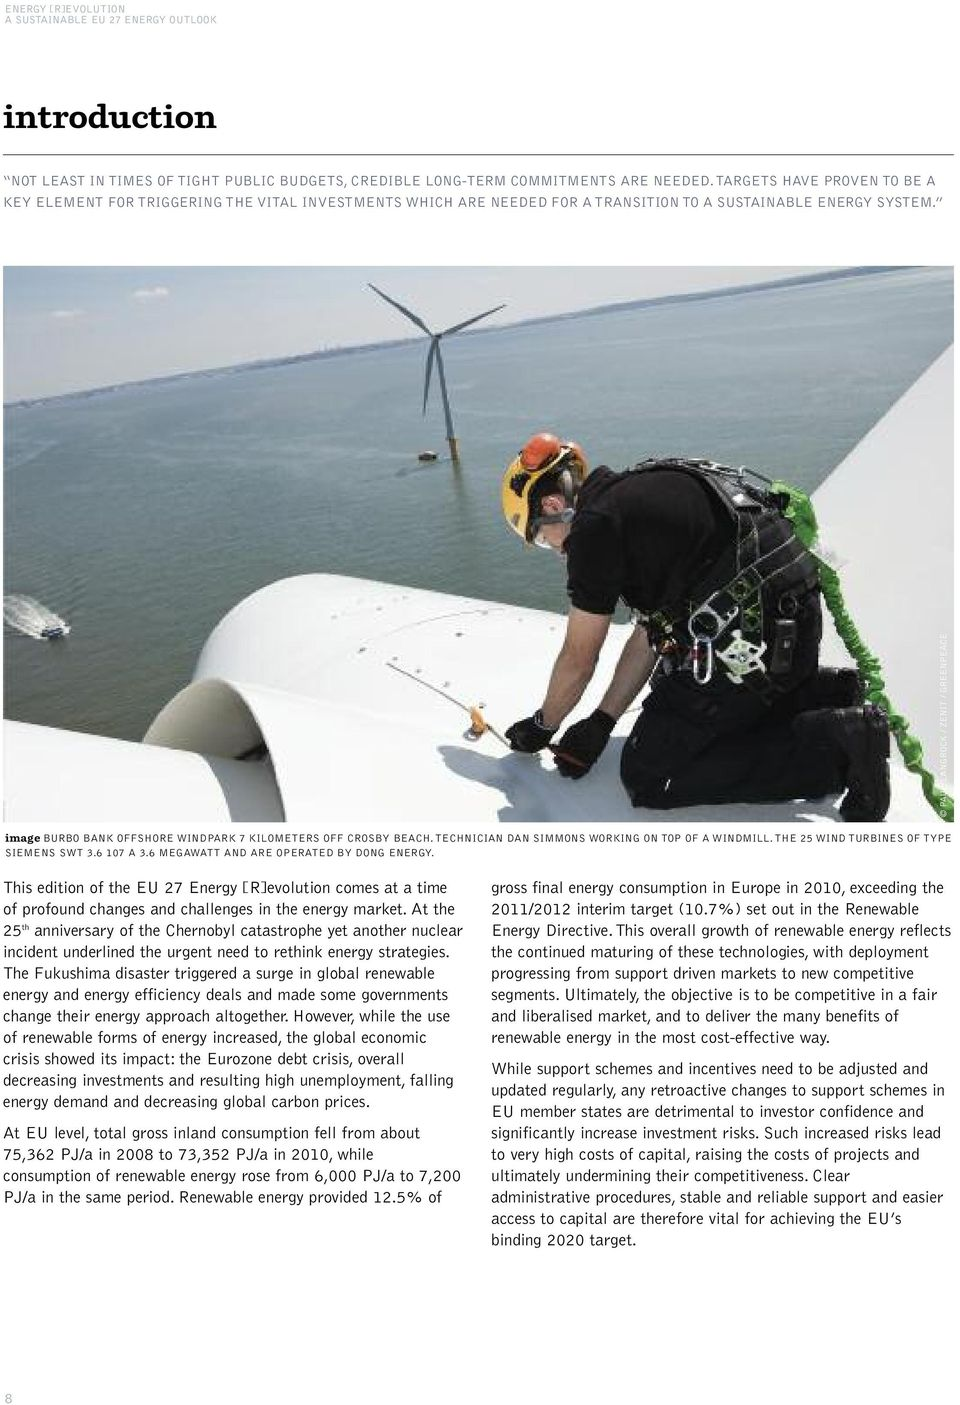 PAUL LANGROCK / ZENIT / GREENPEACE imageburbo BANK OFFSHORE WINDPARK 7 KILOMETERS OFF CROSBY BEACH. TECHNICIAN DAN SIMMONS WORKING ON TOP OF A WINDMILL. THE 5 WIND TURBINES OF TYPE SIEMENS SWT 3.